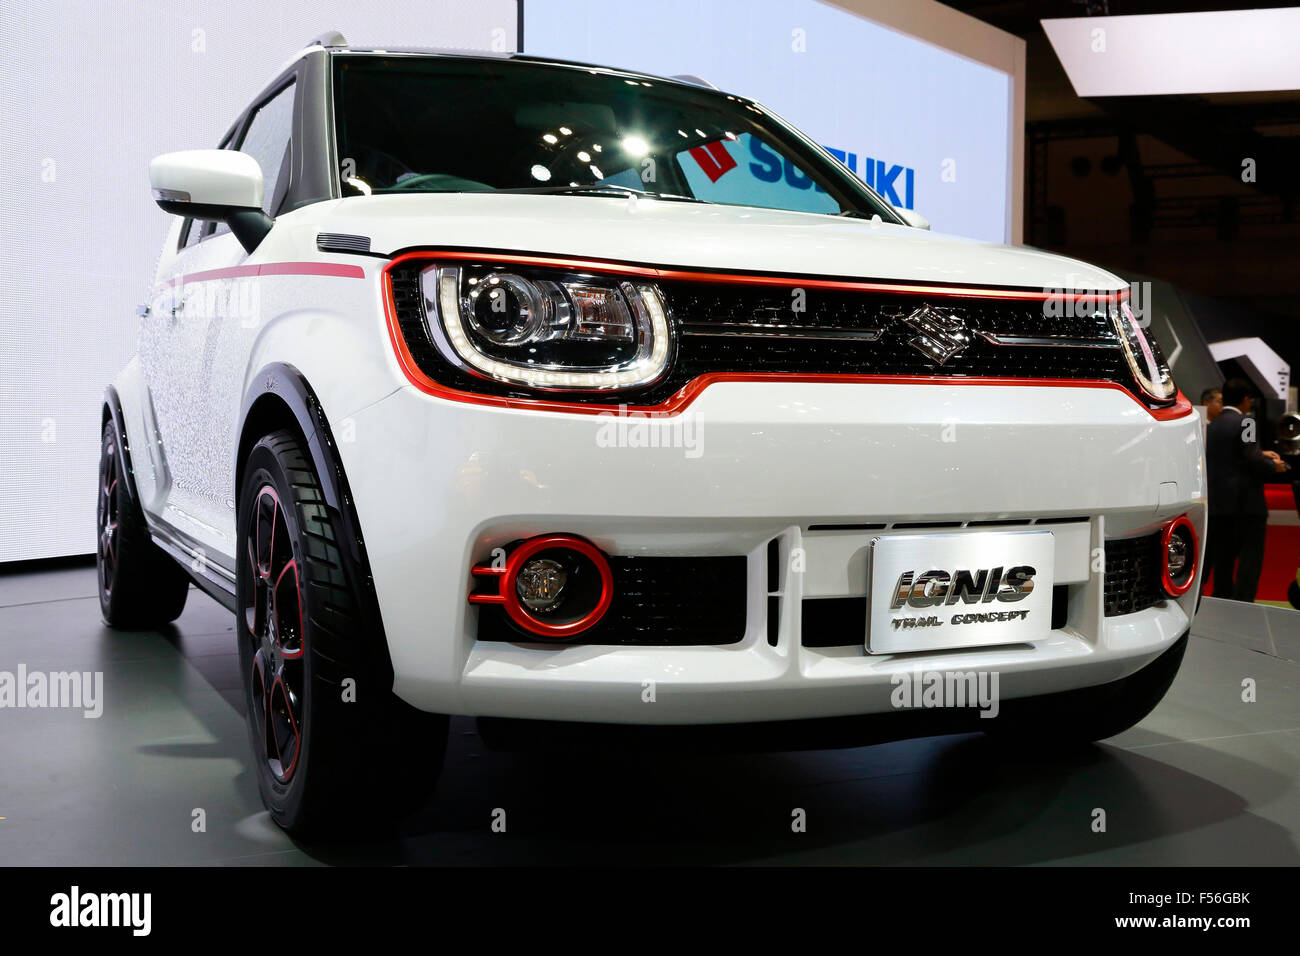 The New SUZUKI IGNIS Car On Display During 44th Tokyo Motor Show 2015 In